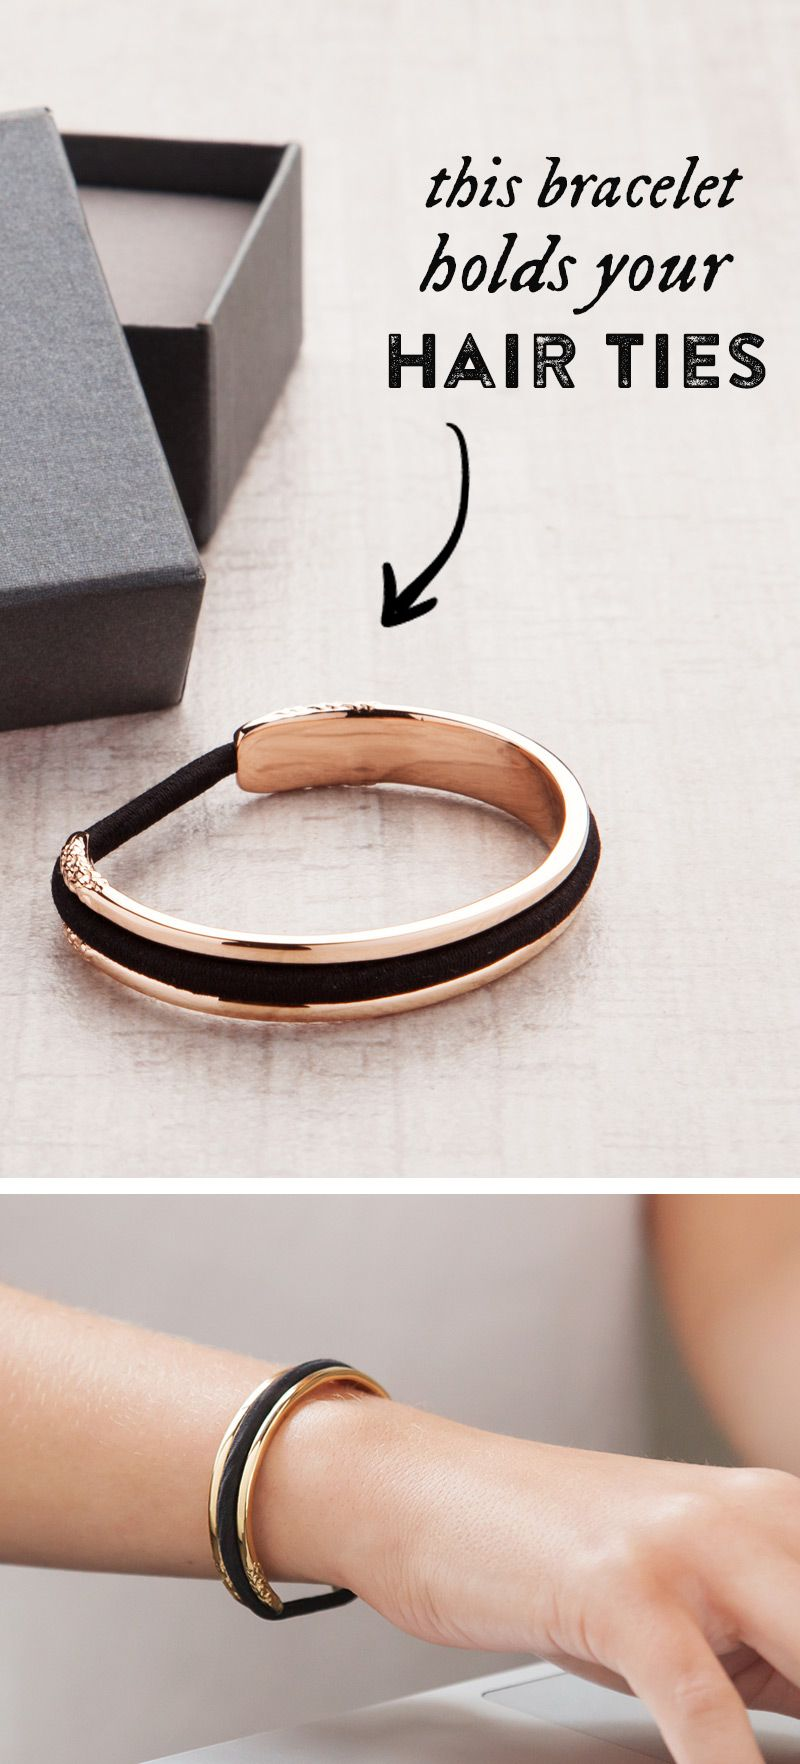 OMG....I need this. I wear about 5 hair ties on my wrist every day...